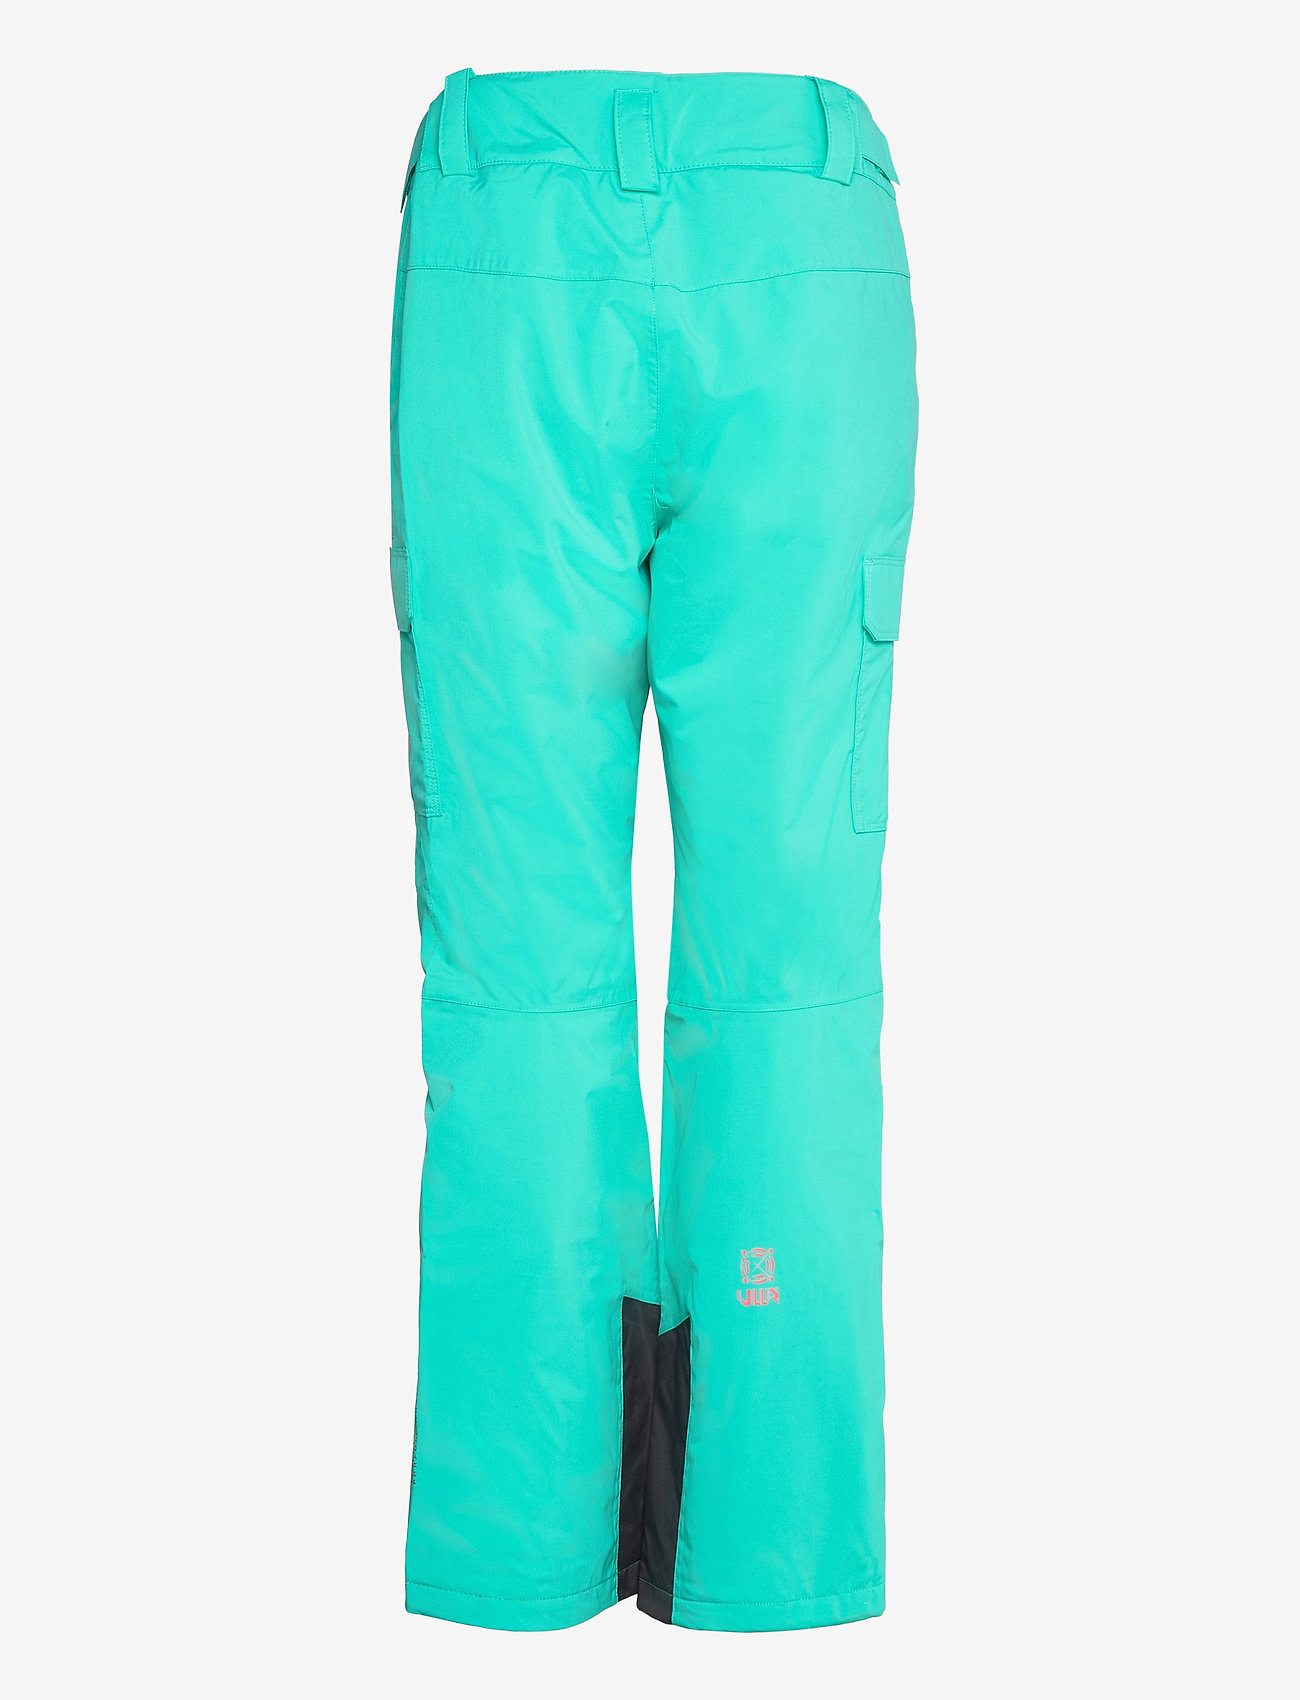 Helly Hansen - W SWITCH CARGO INSULATED PANT - skibroeken - turquoise - 1